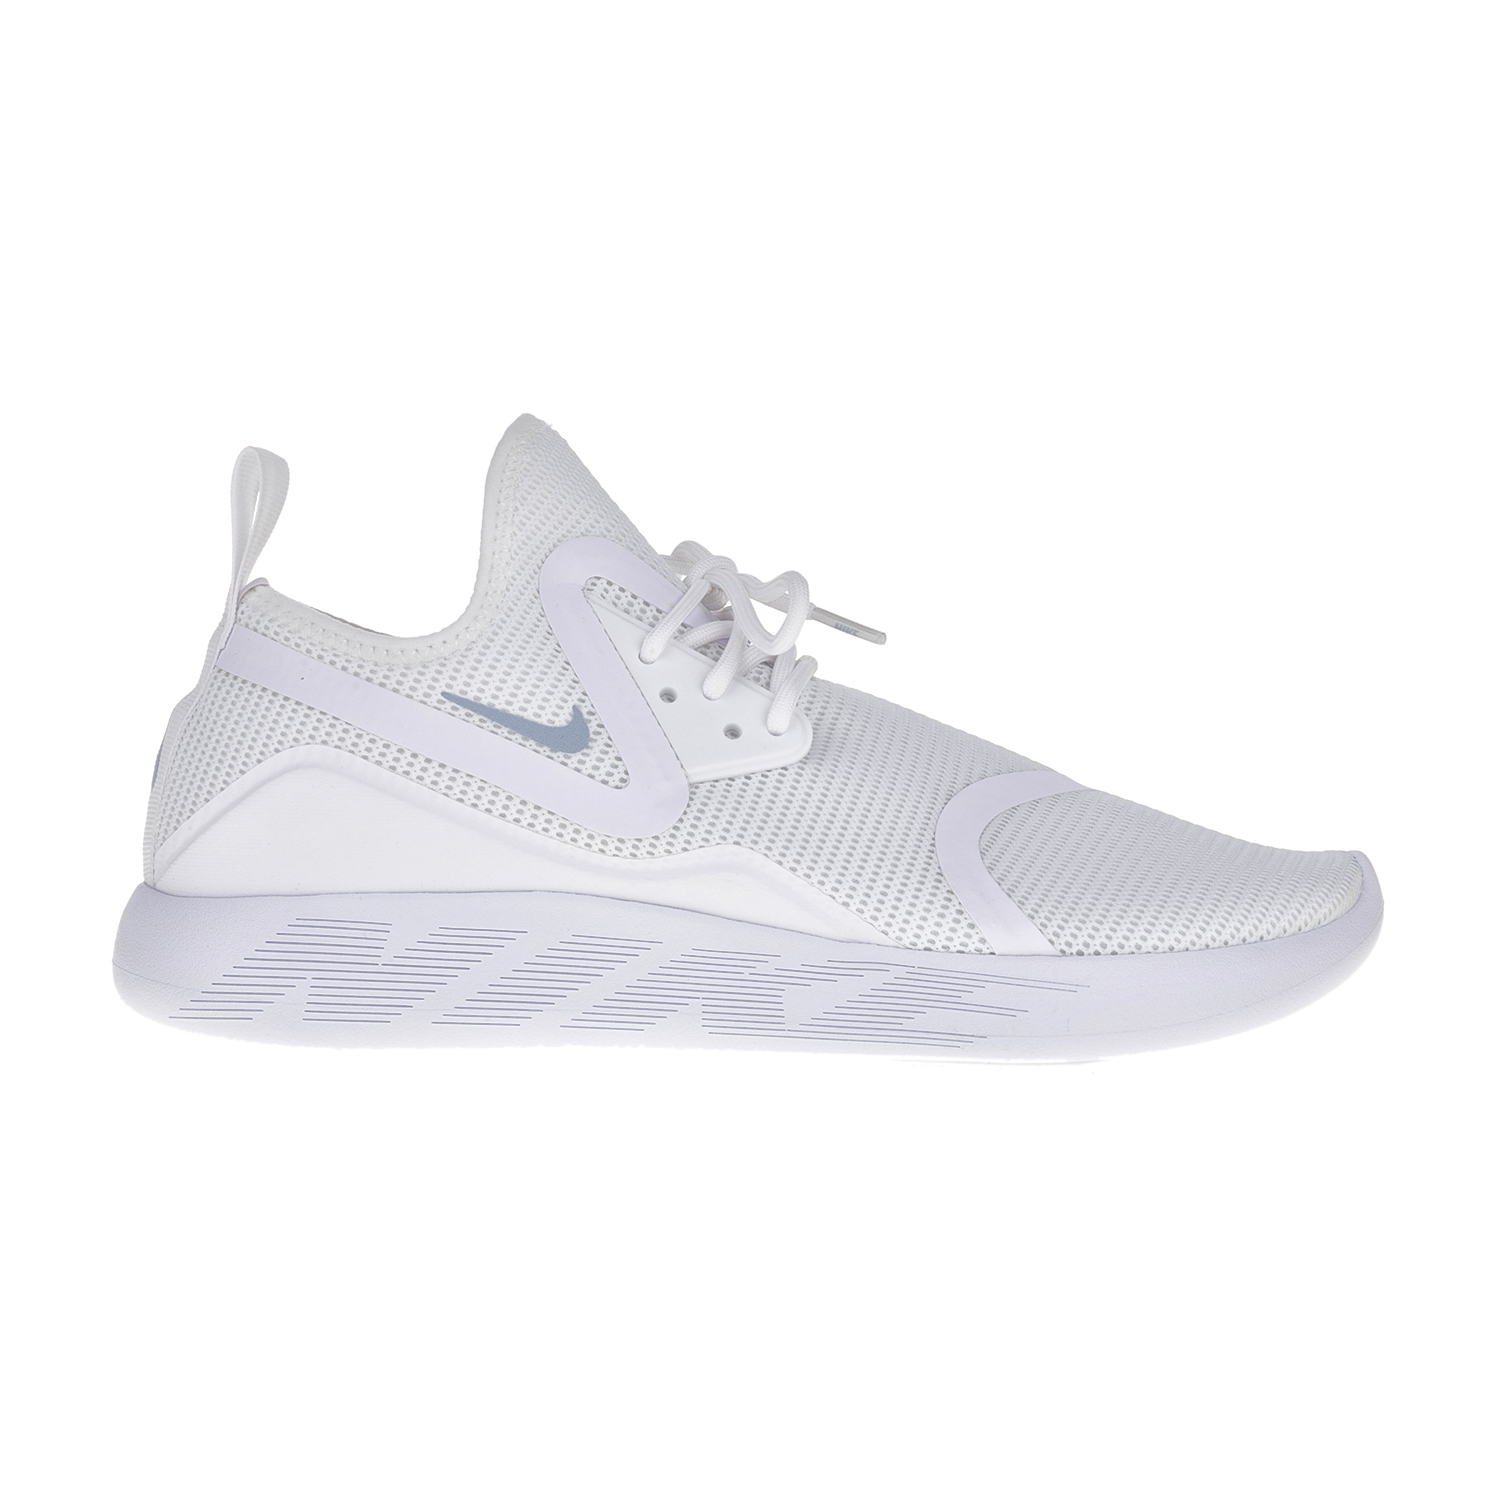 NIKE - Ανδρικά αθλητικά παπούτσια Nike LUNARCHARGE BR λευκά